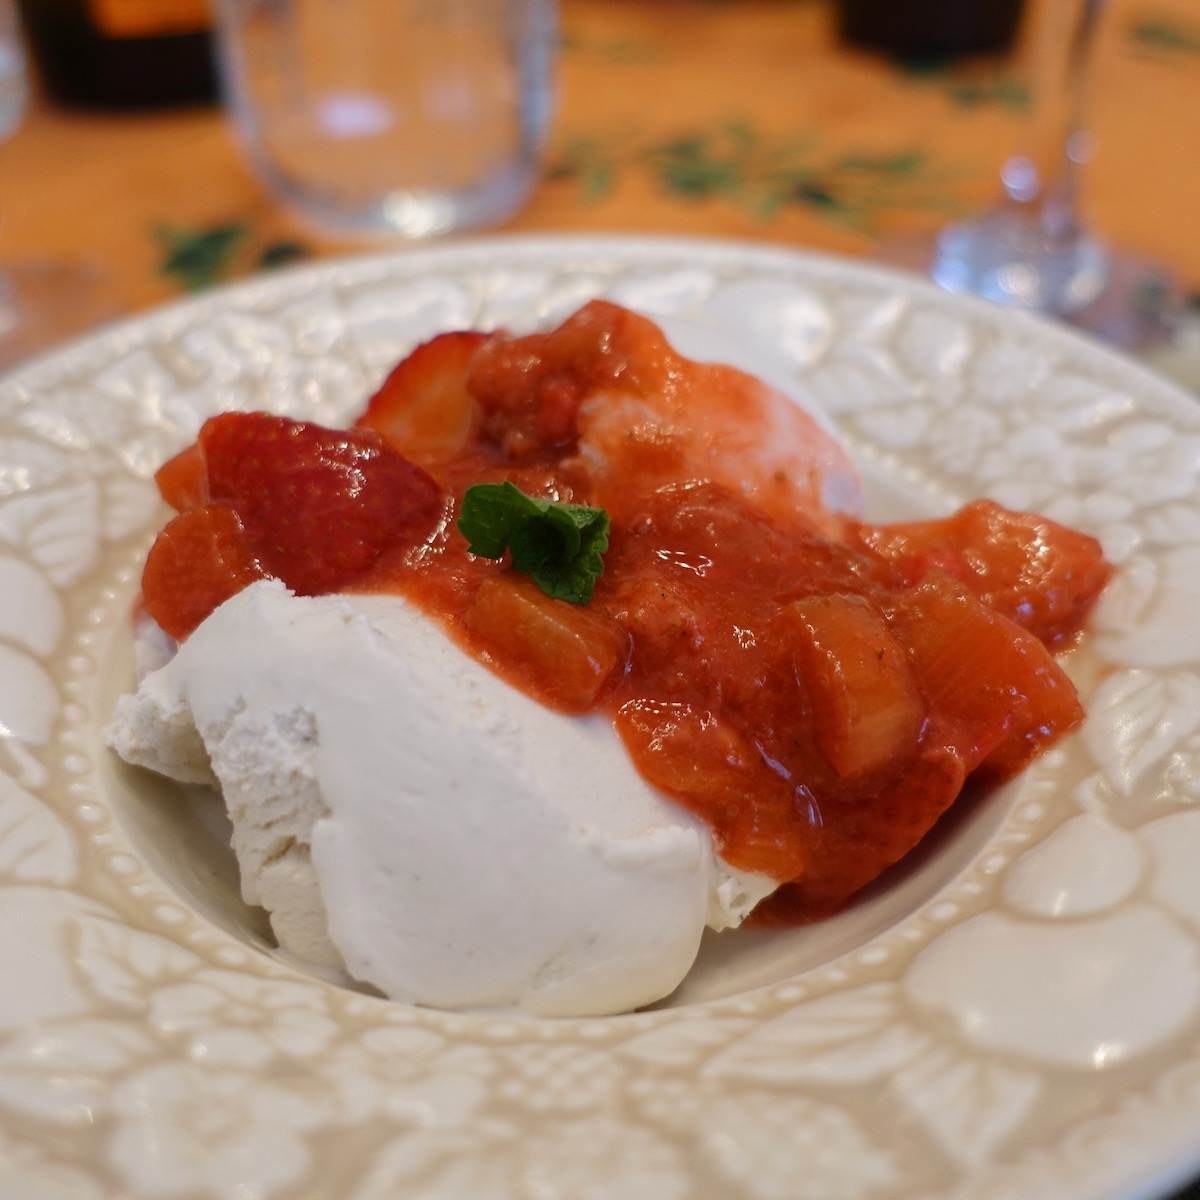 Strawberry Rhubarb Compote with Coconut Ice Cream